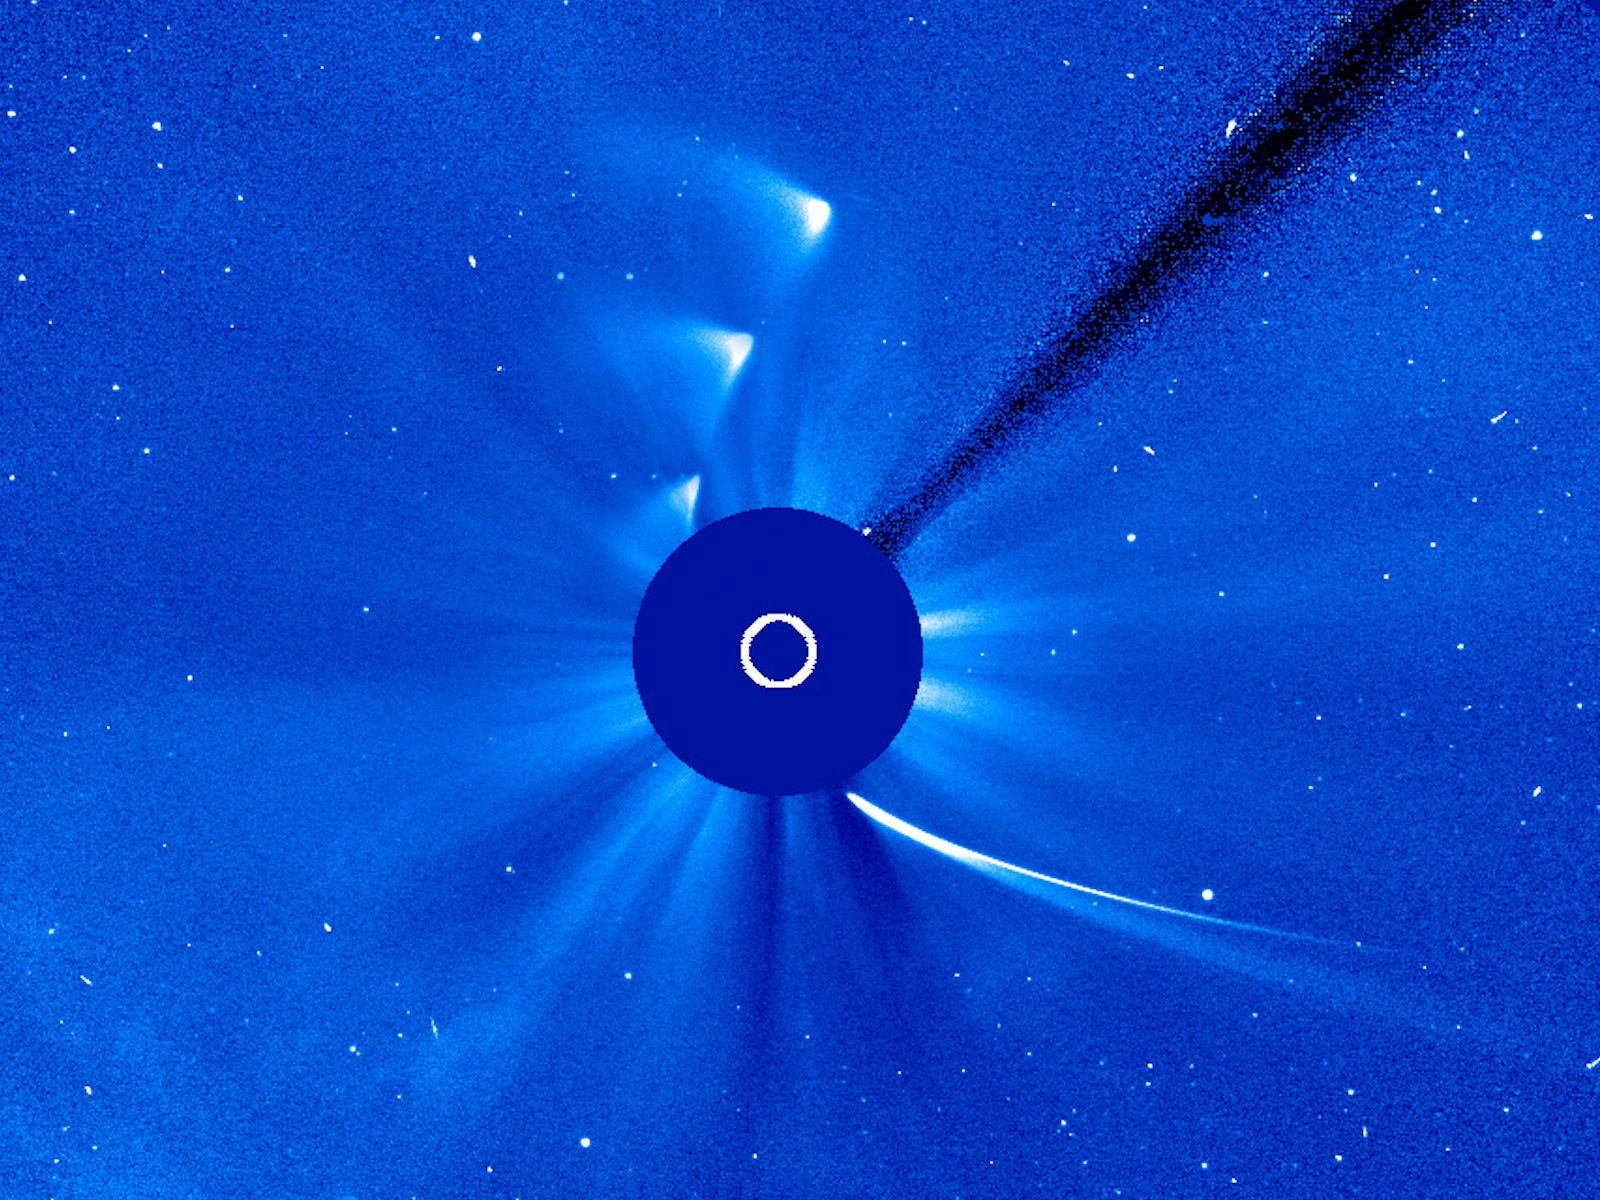 ISON's Dance with the Sun | Space Wallpaper